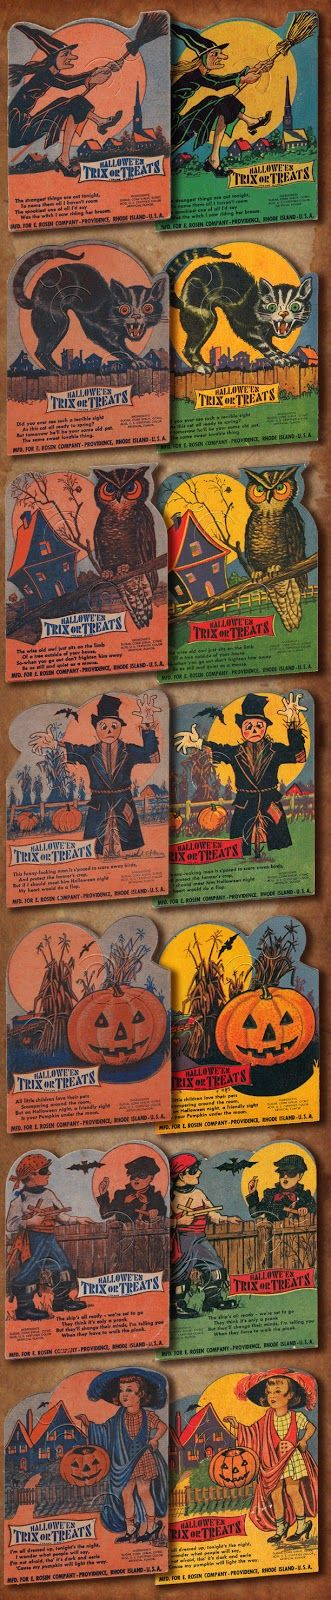 Rosen vintage Halloween candy holder cards 1930s and 1940s versions